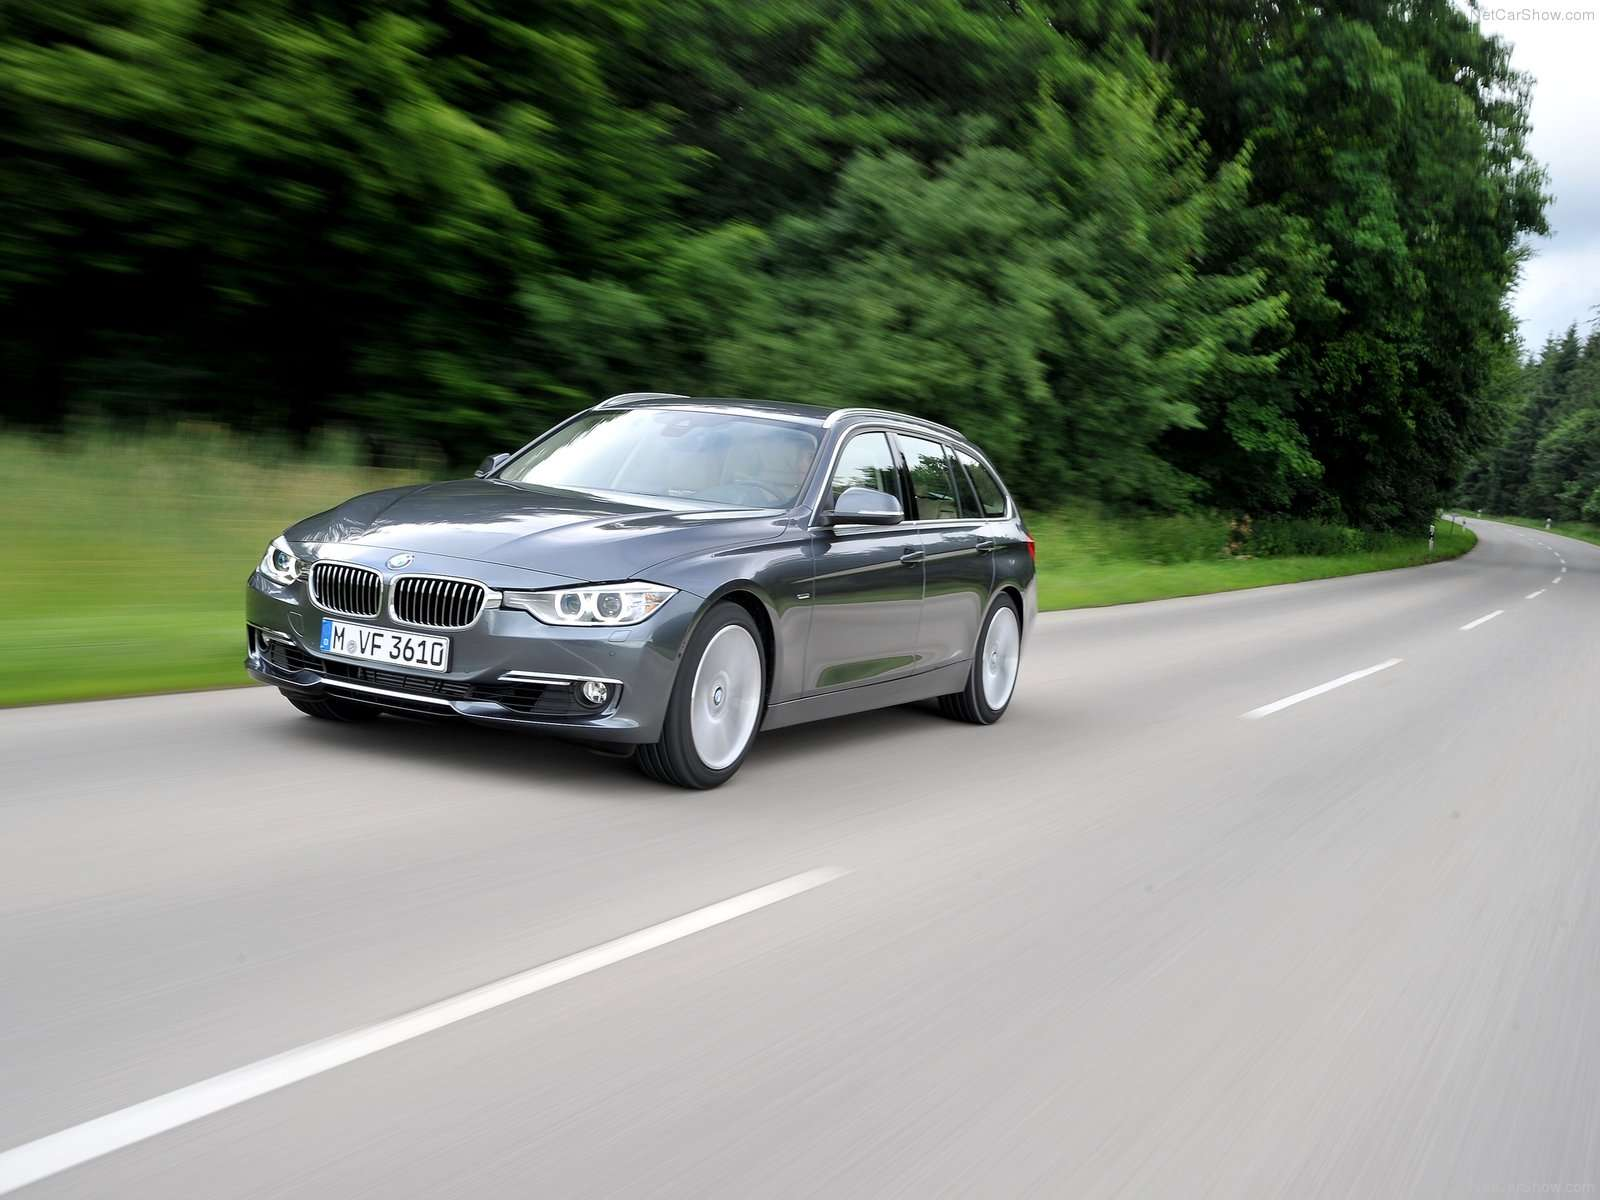 BMW 3 Series Wallpaper 022